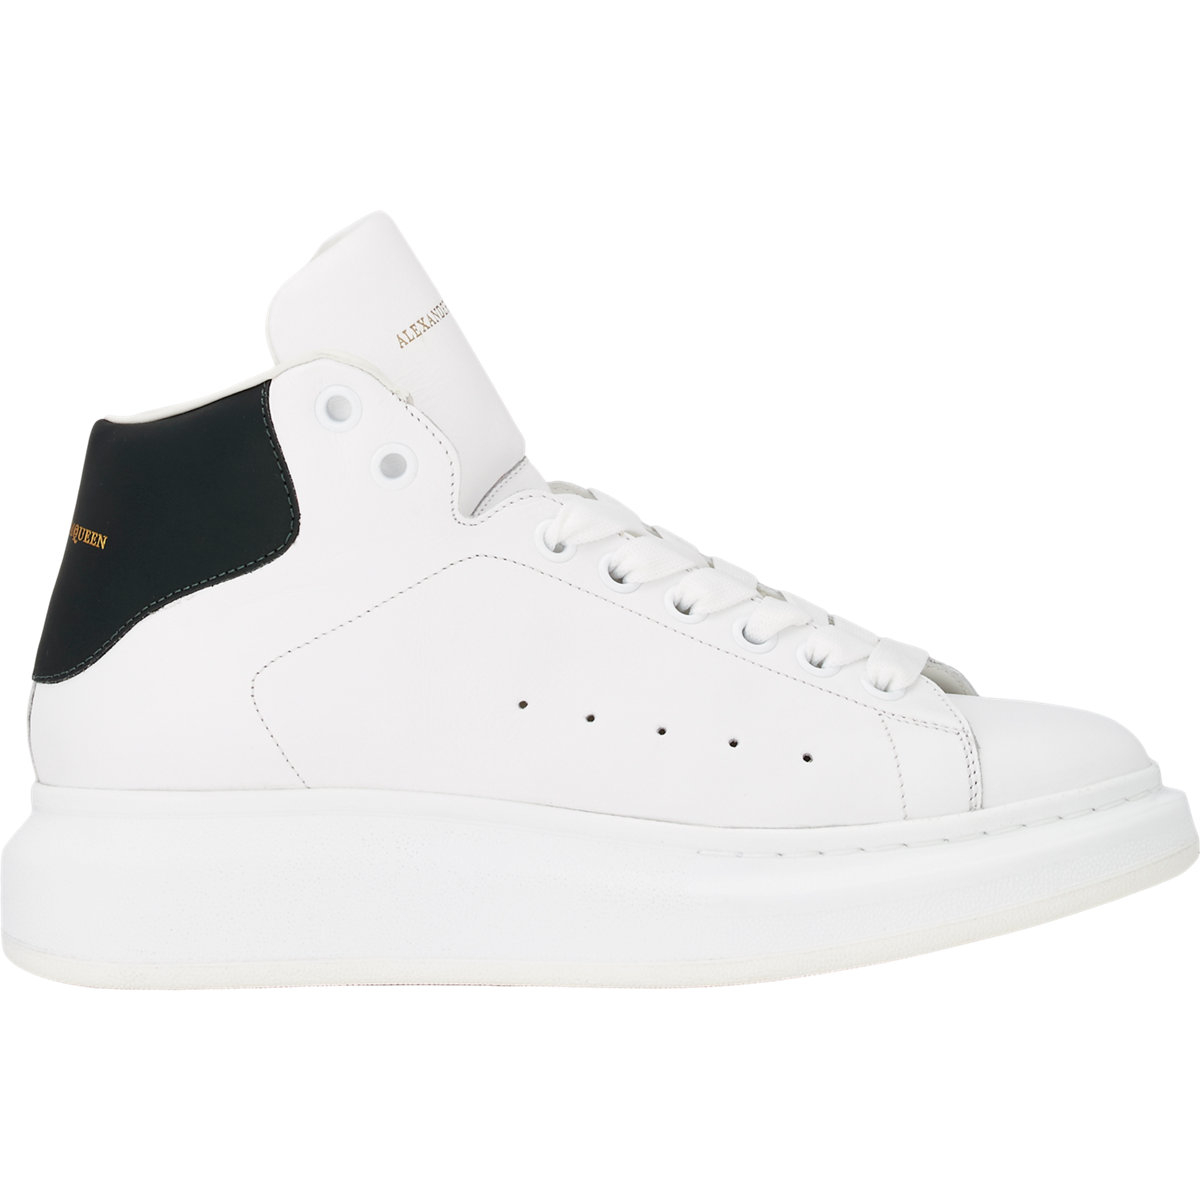 chunky sole sneakers - White Alexander McQueen UkLM3r